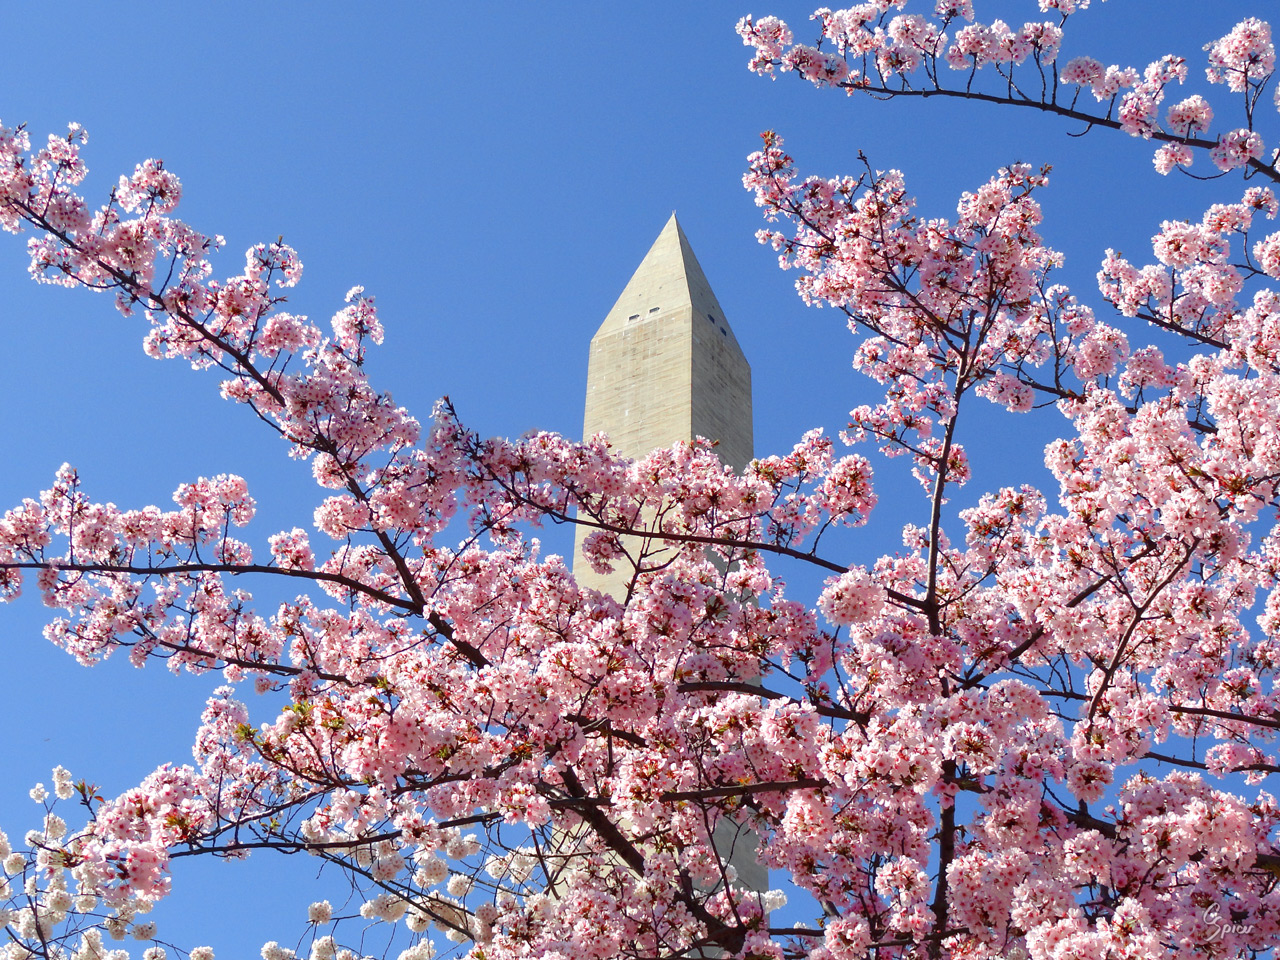 Cherry Blossoms at the Monument - Photograph by Christopher Spicer